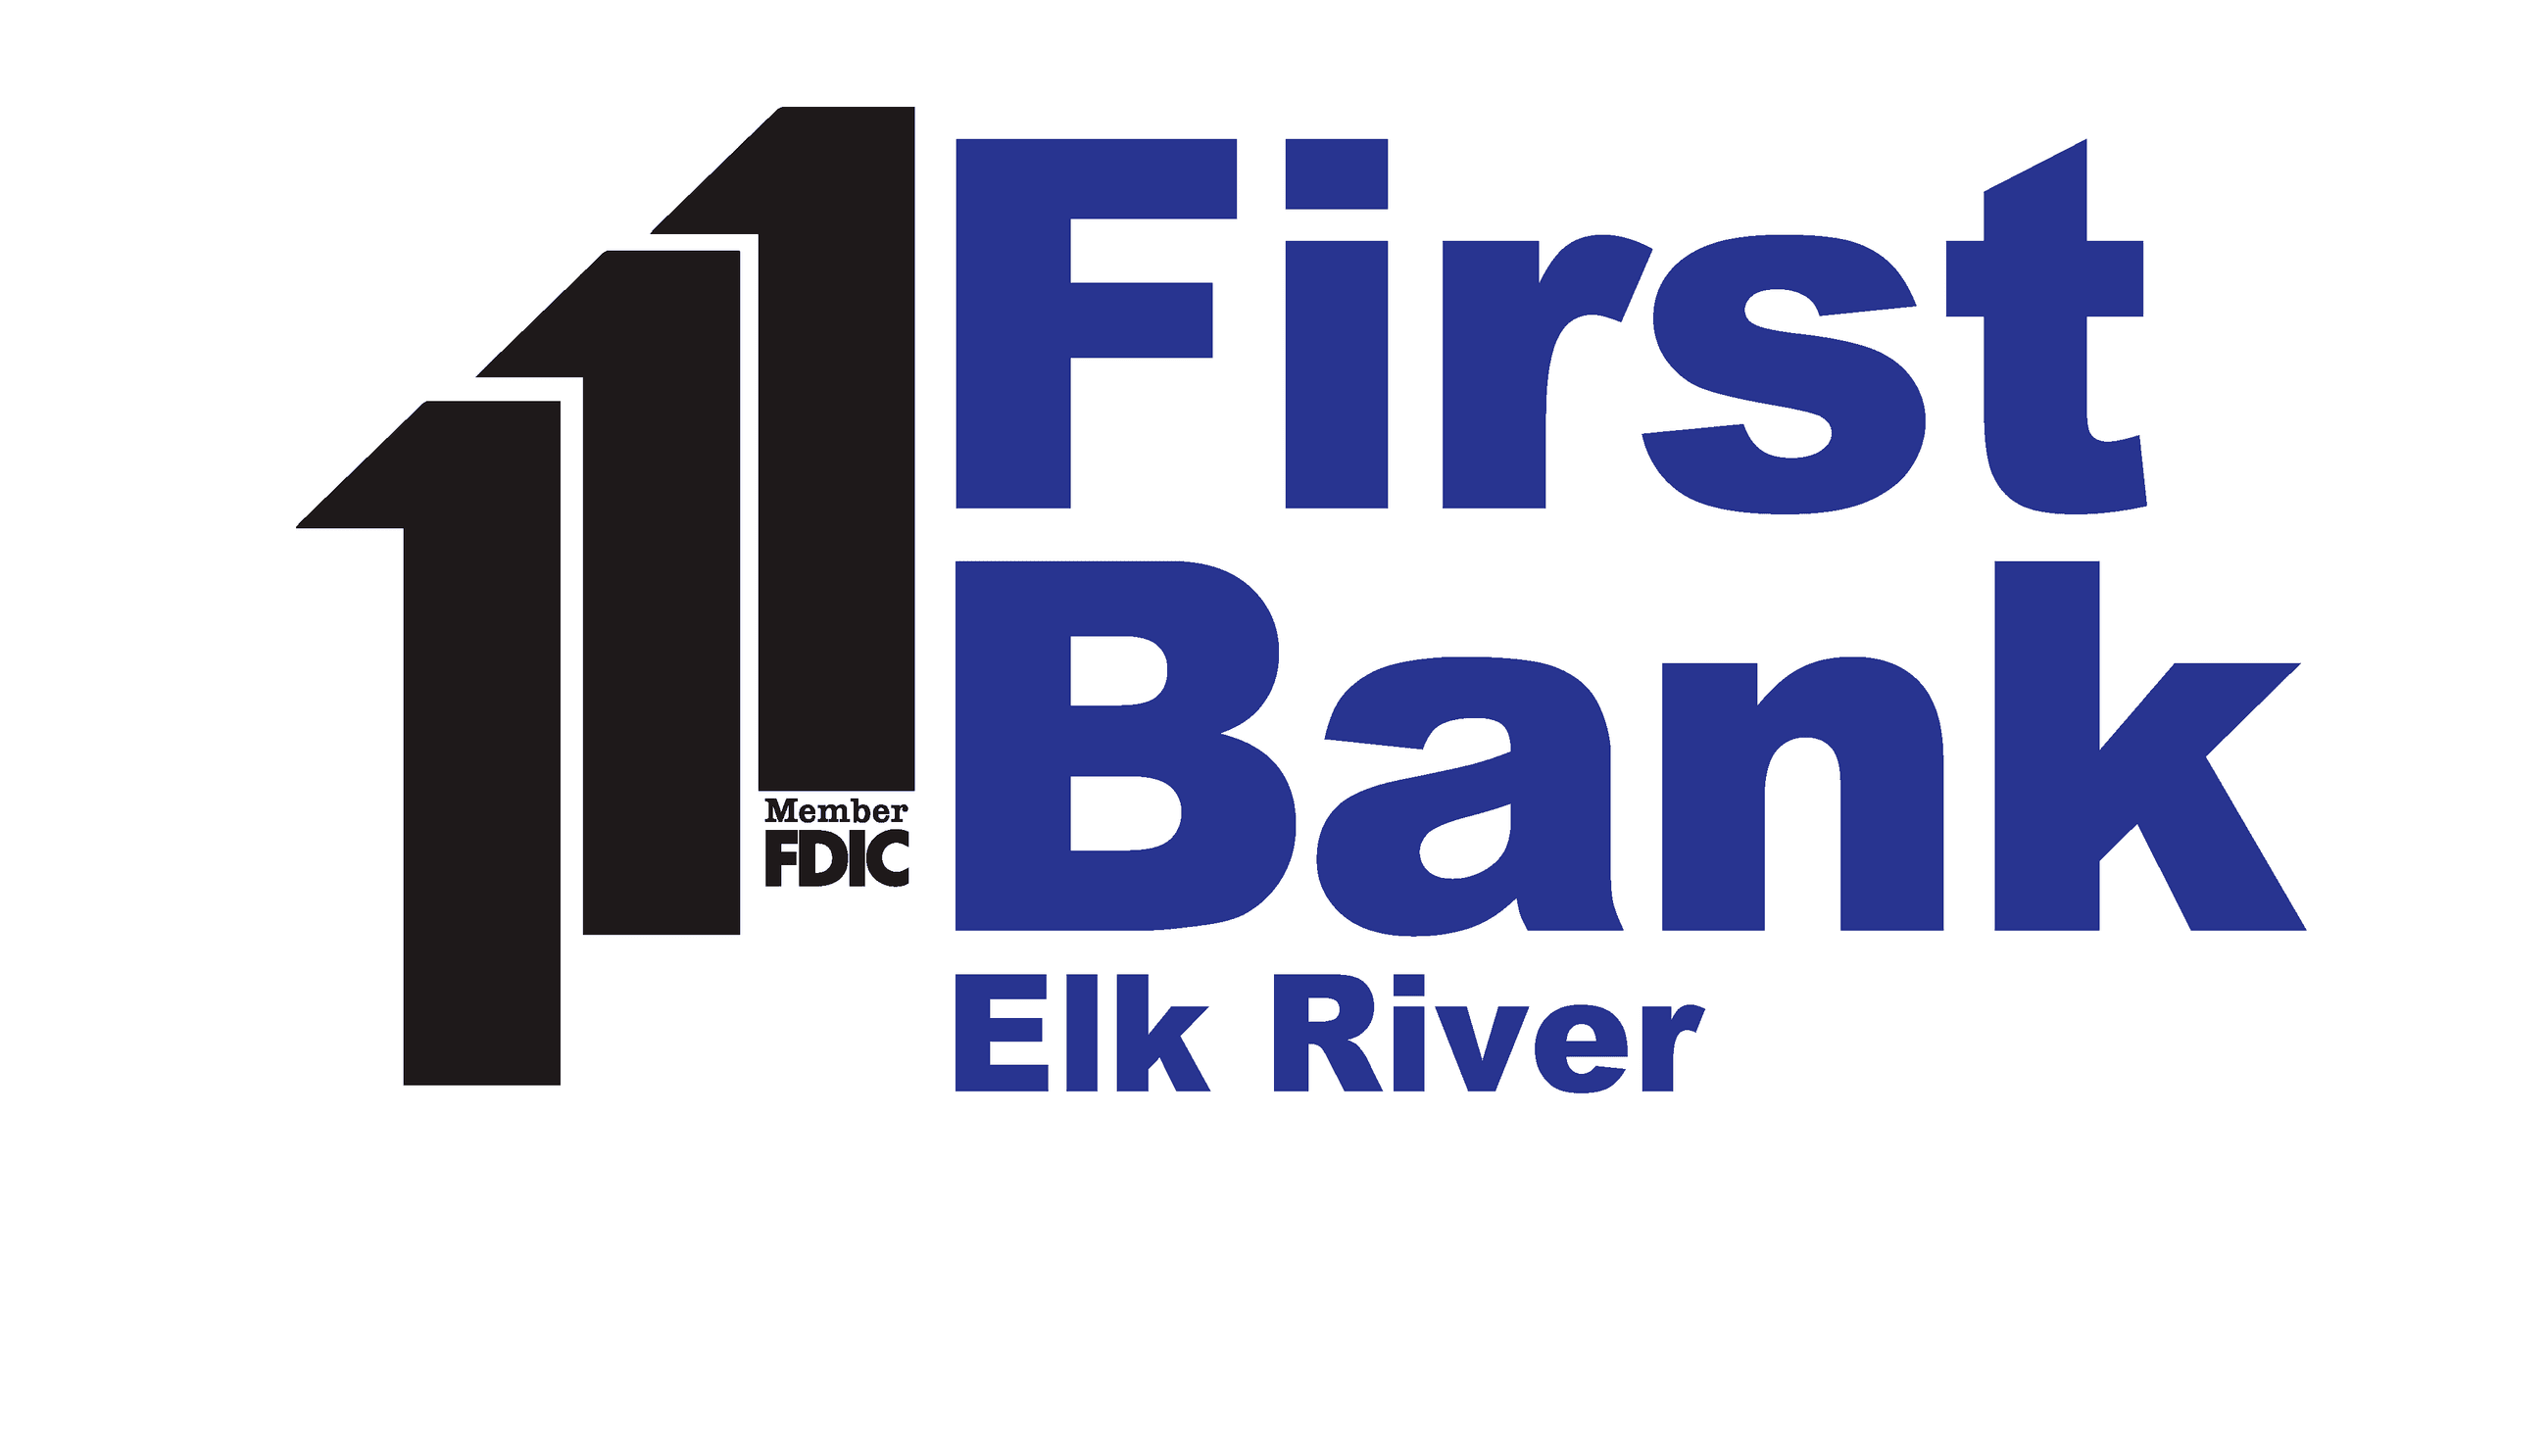 Sponsored by First Bank Elk River Opens in new window